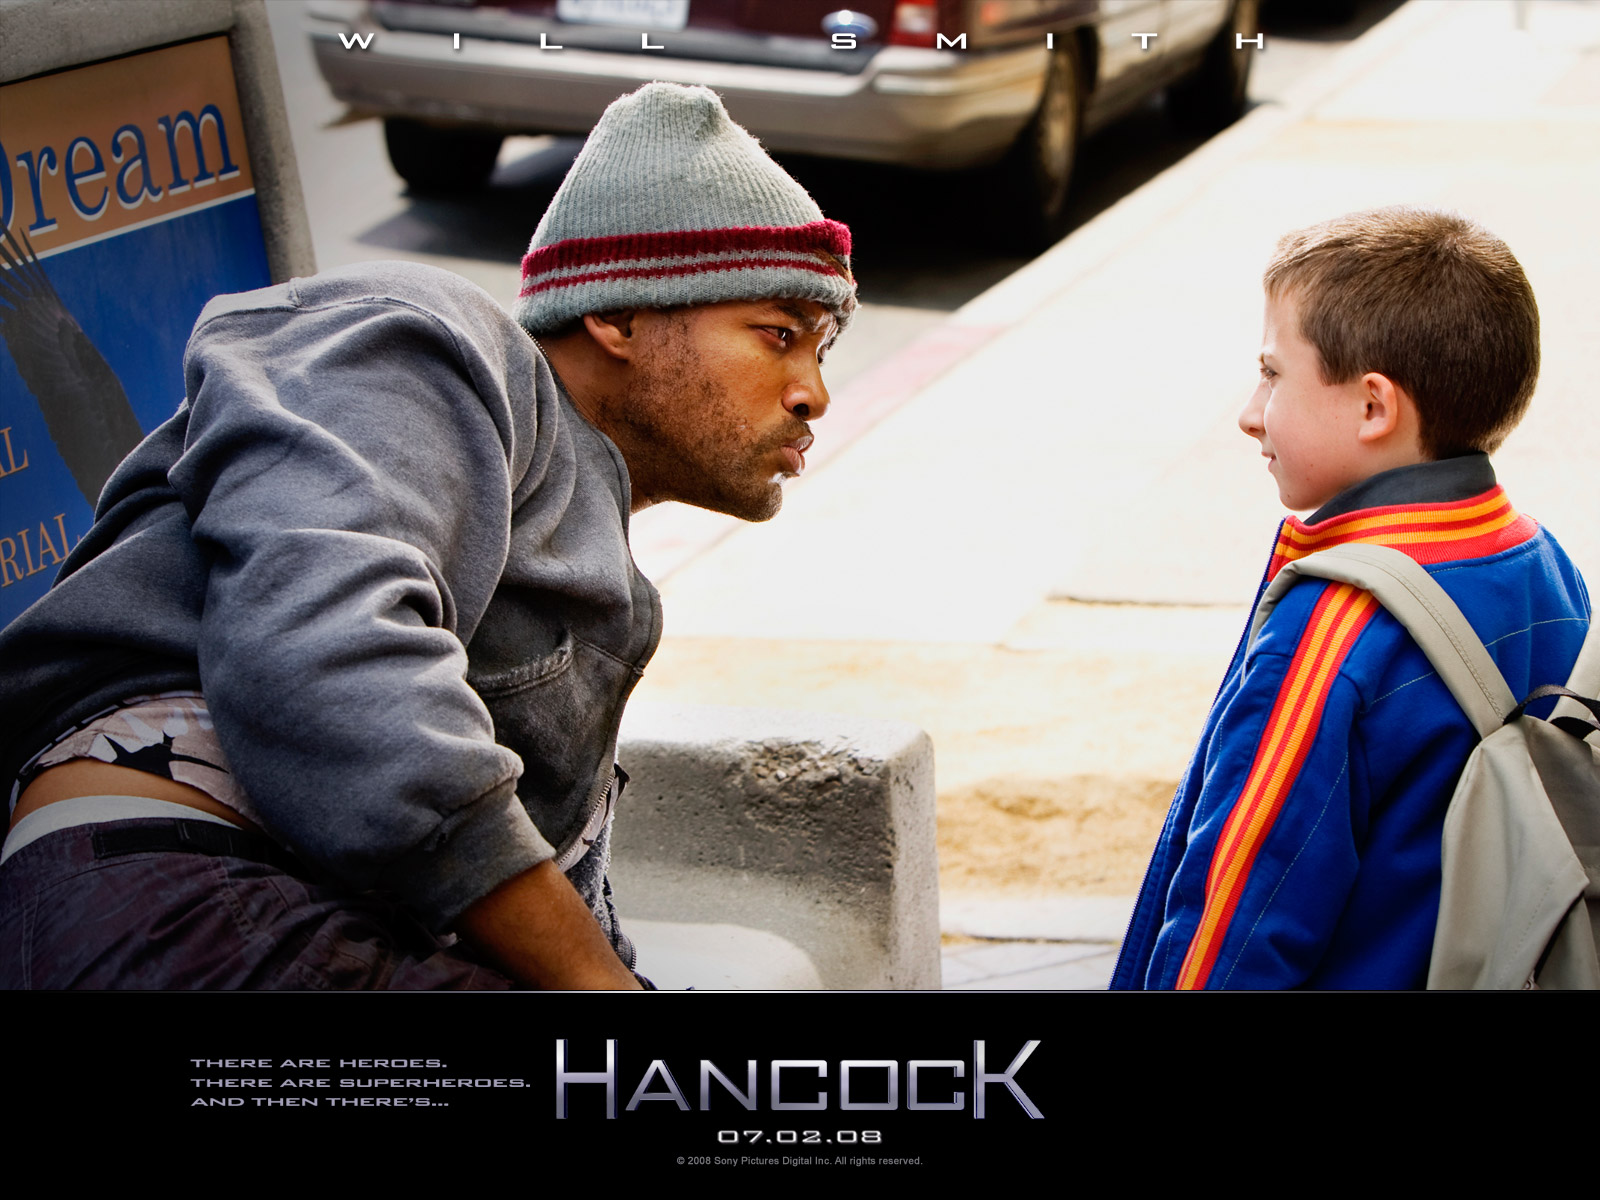 Hancock Free Desktop Wallpapers For Widescreen Hd And Mobile